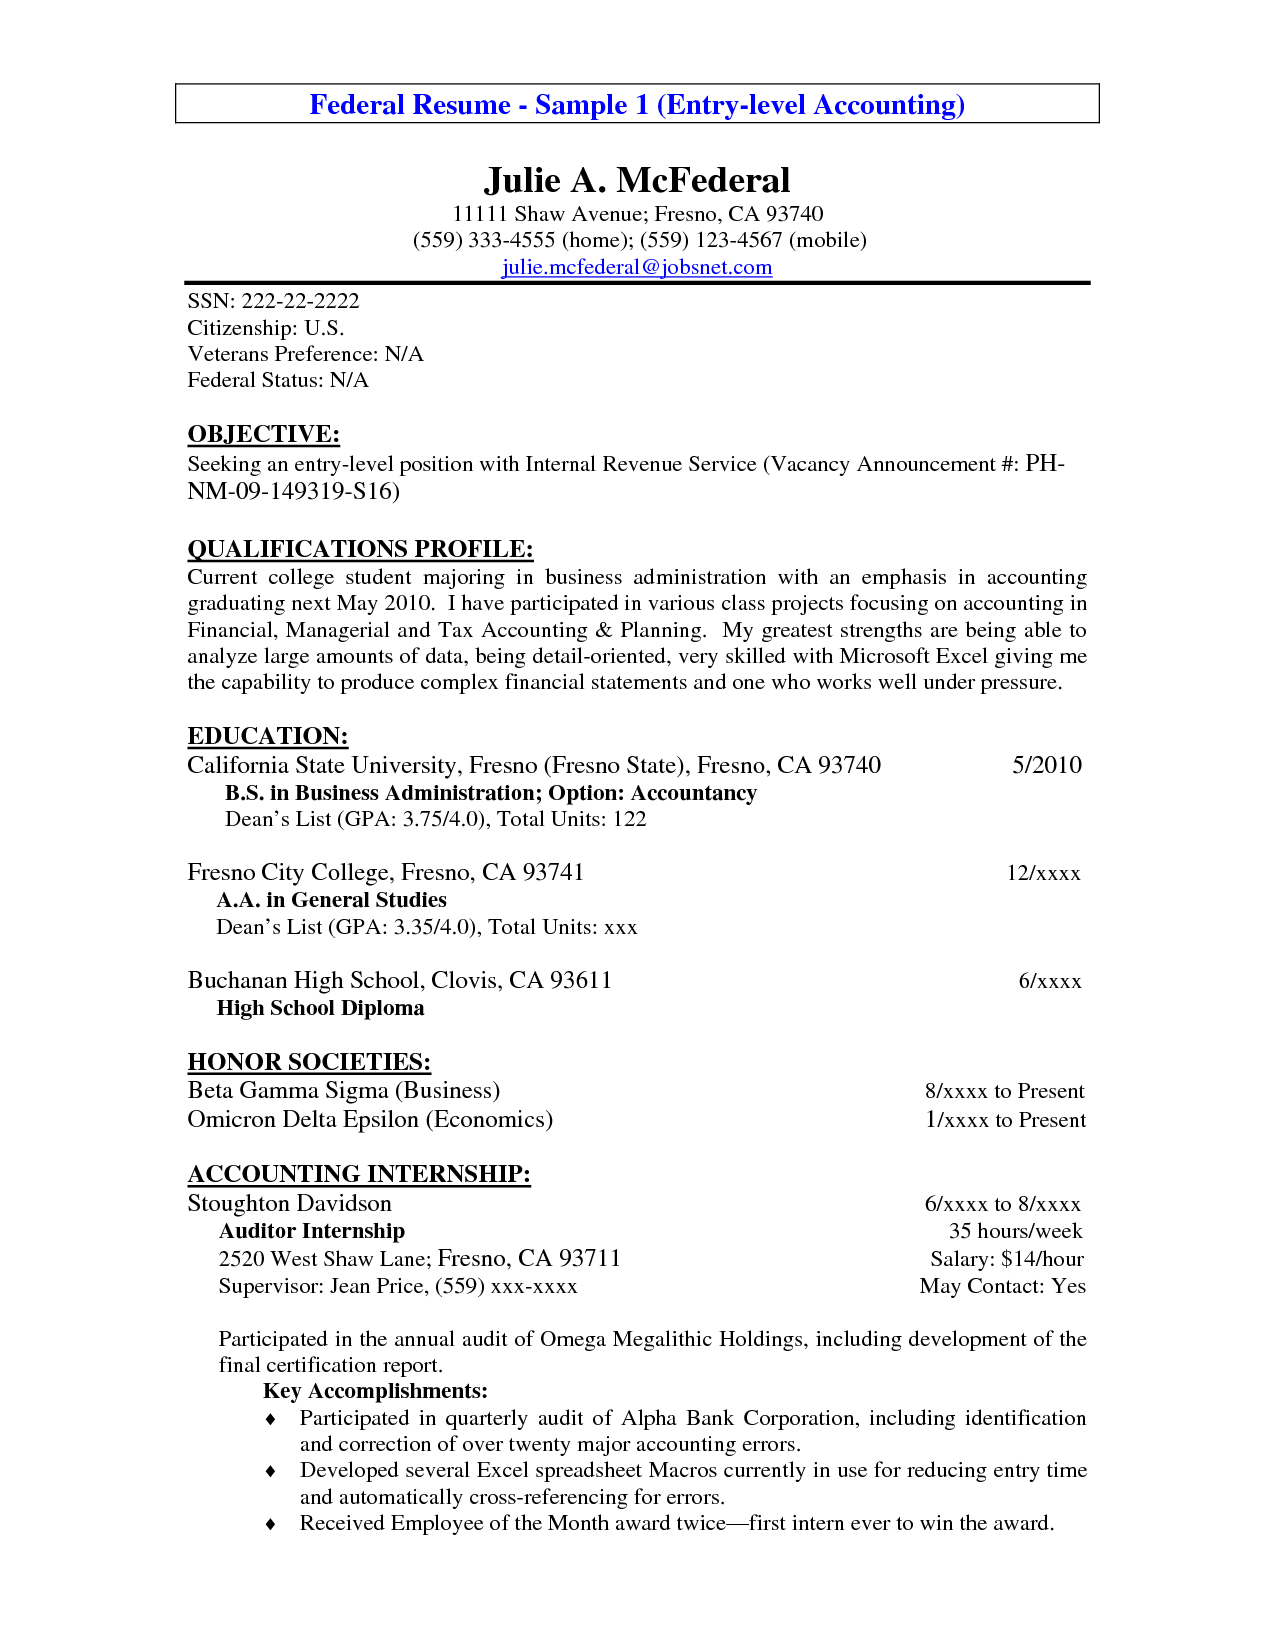 resume for accountant samples